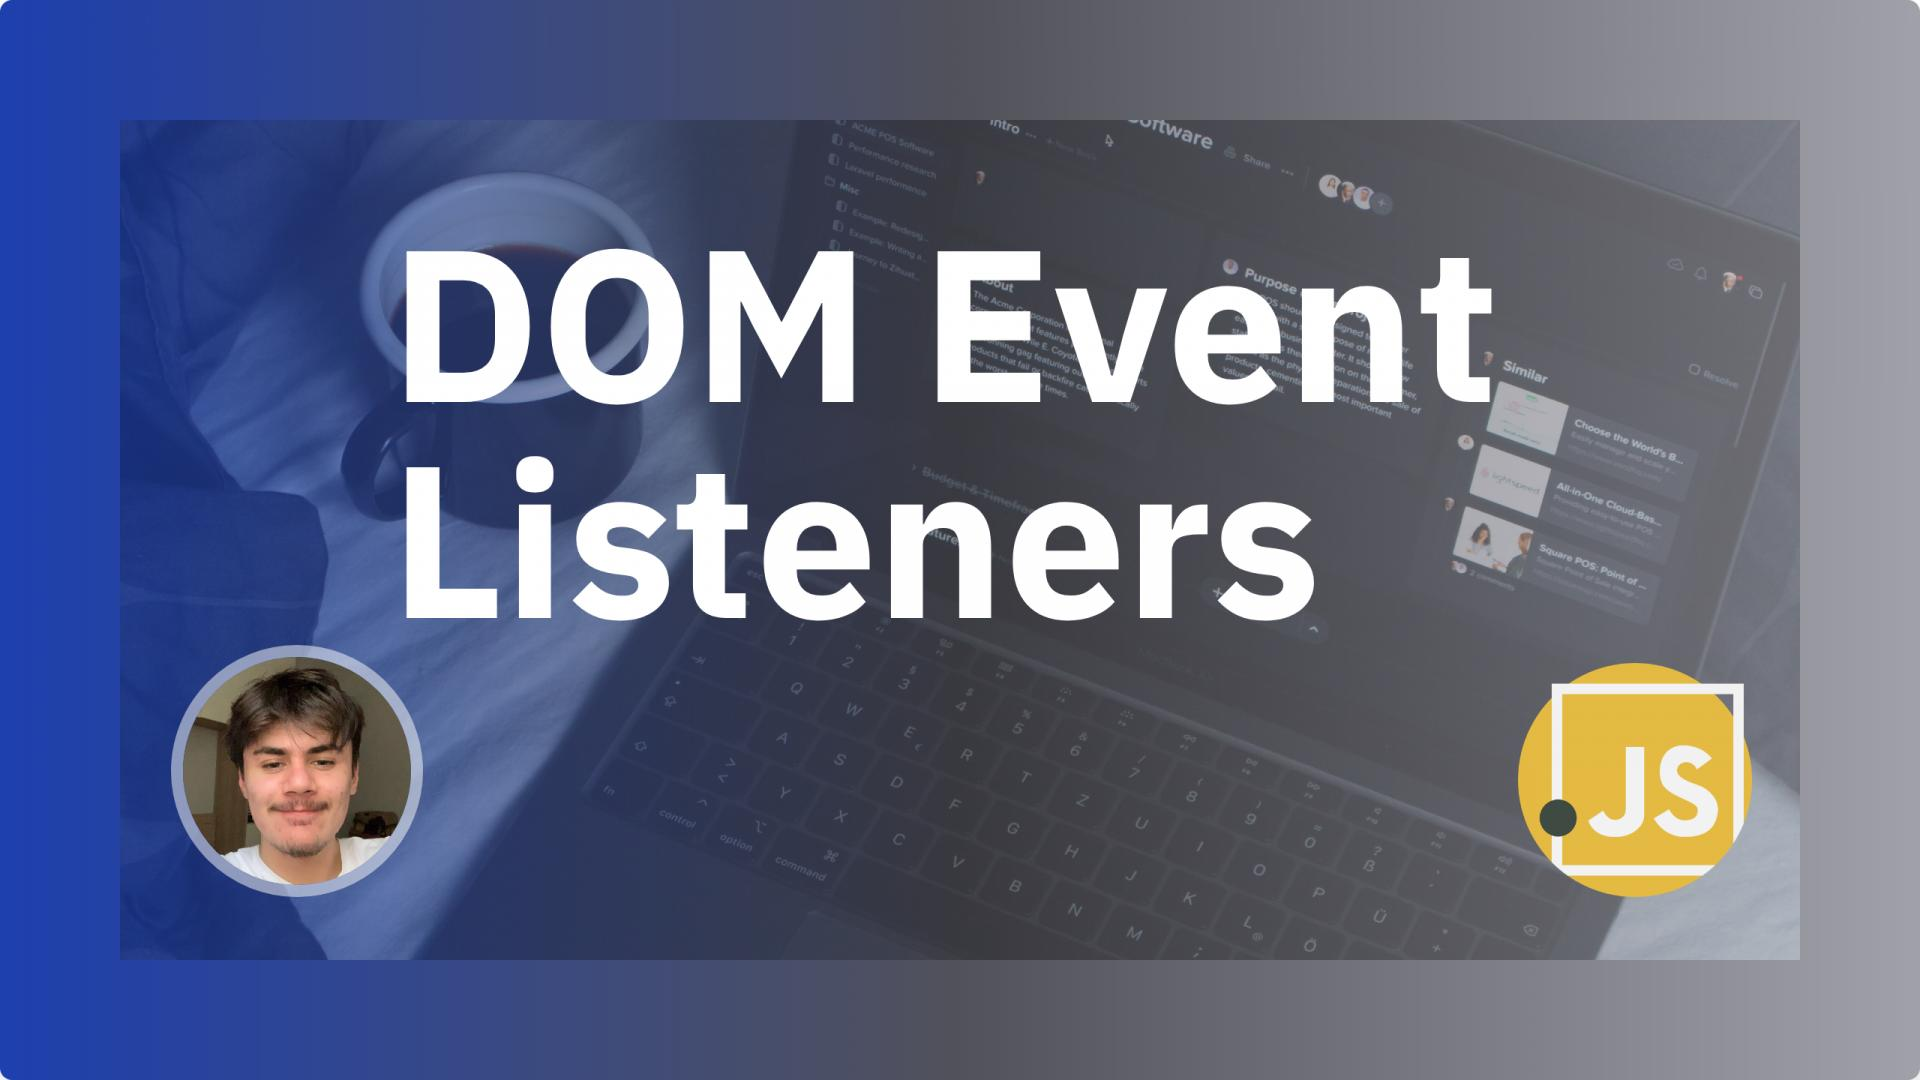 DOM Event Listeners